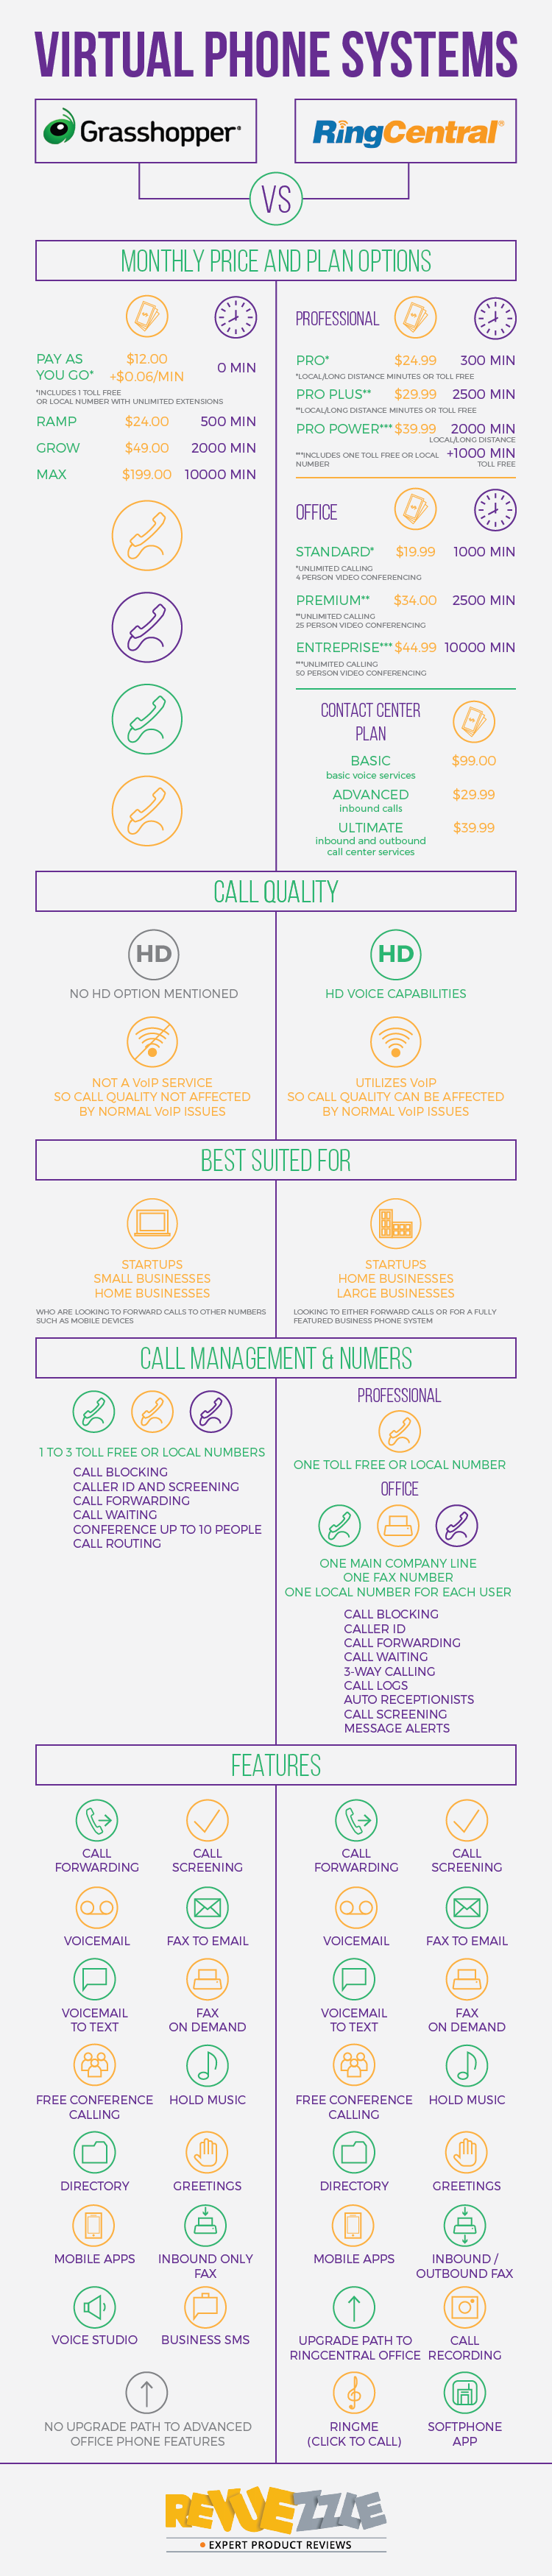 RingCentral vs. Grasshopper Small Business Phone System Comparison #businessphone #smallbusiness #infographic